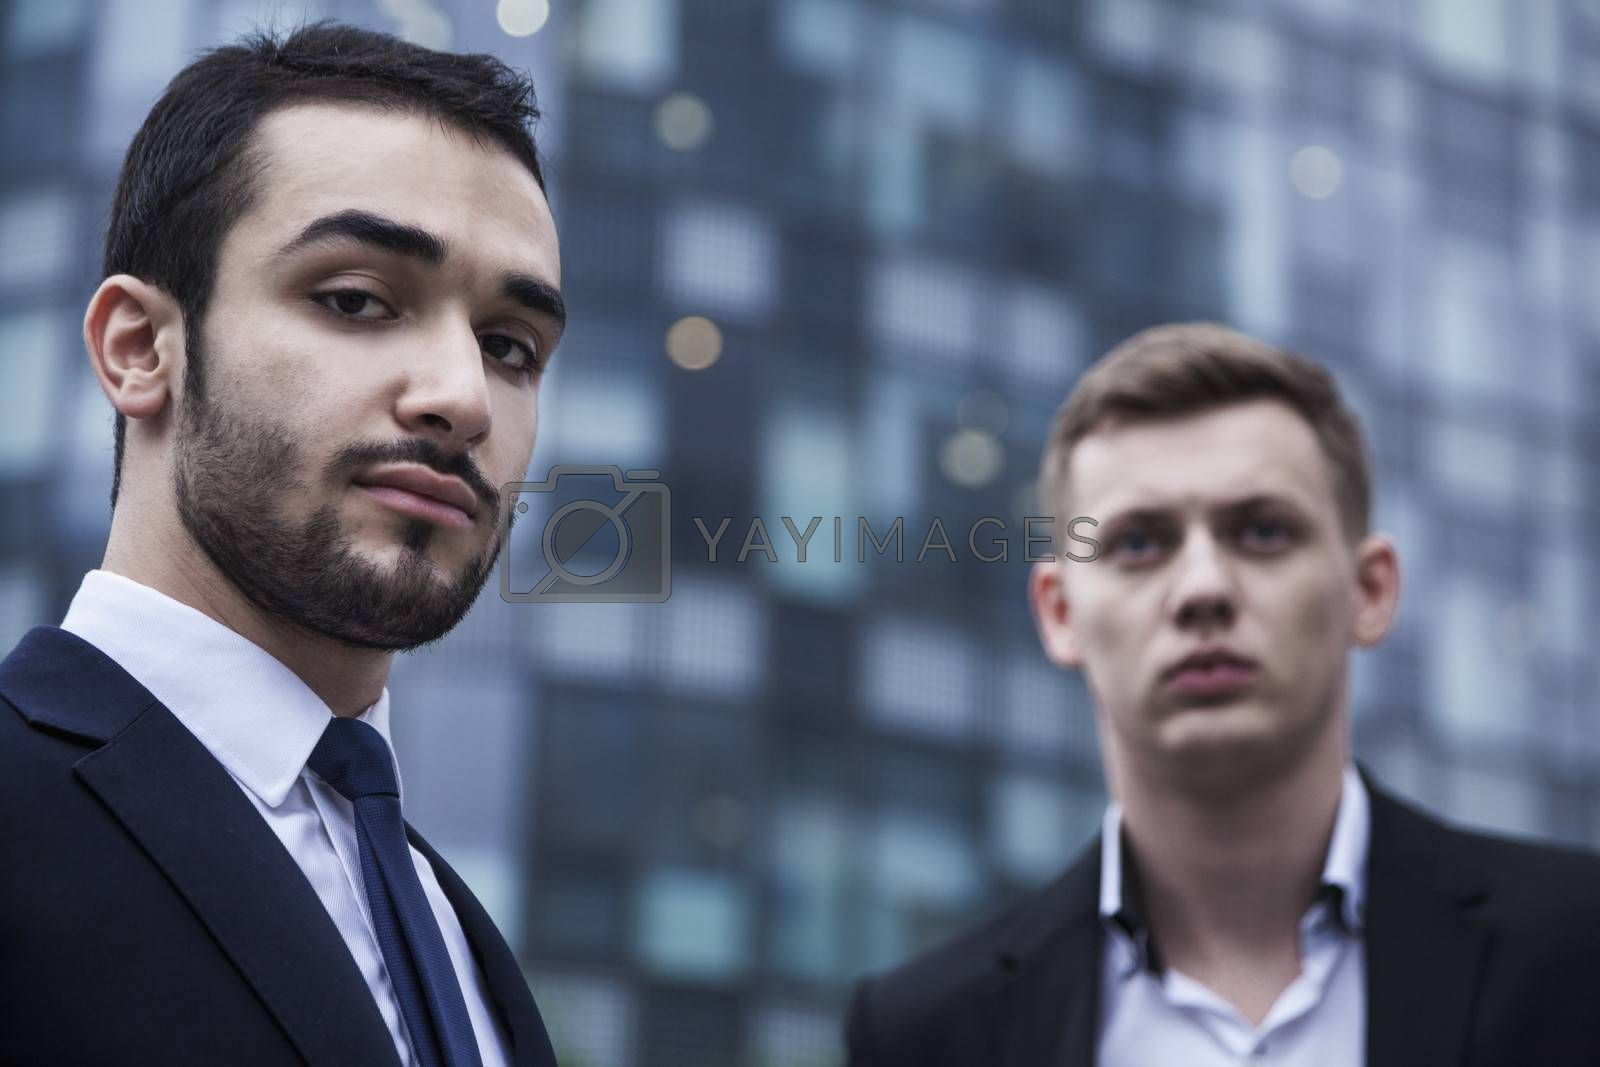 Portrait of two serious young businessmen looking at the camera, outdoors, business district